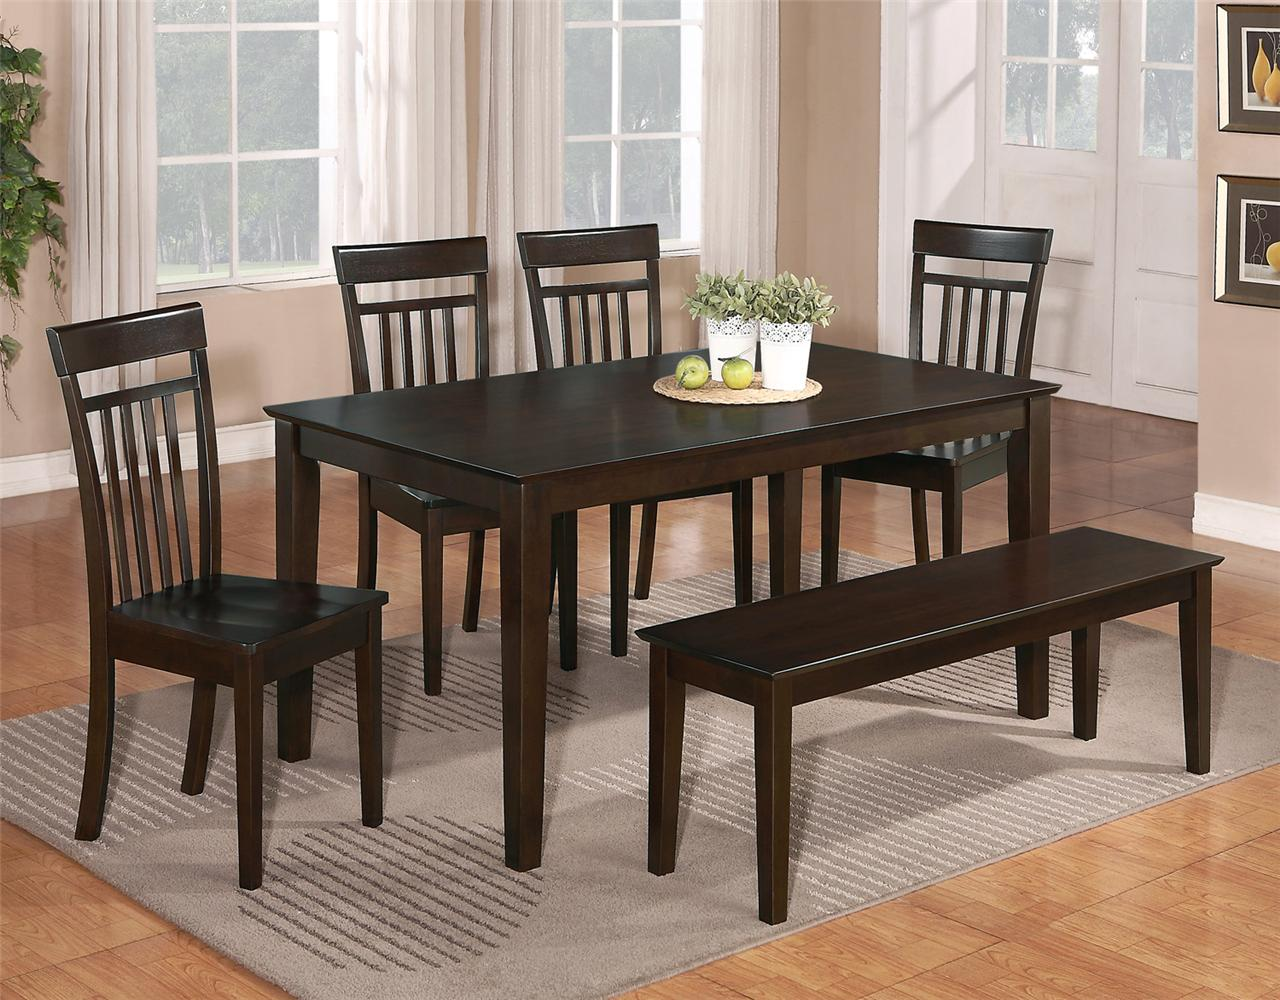 6 pc dinette kitchen dining room set table w 4 wood chair for Kitchen table sets with bench and chairs